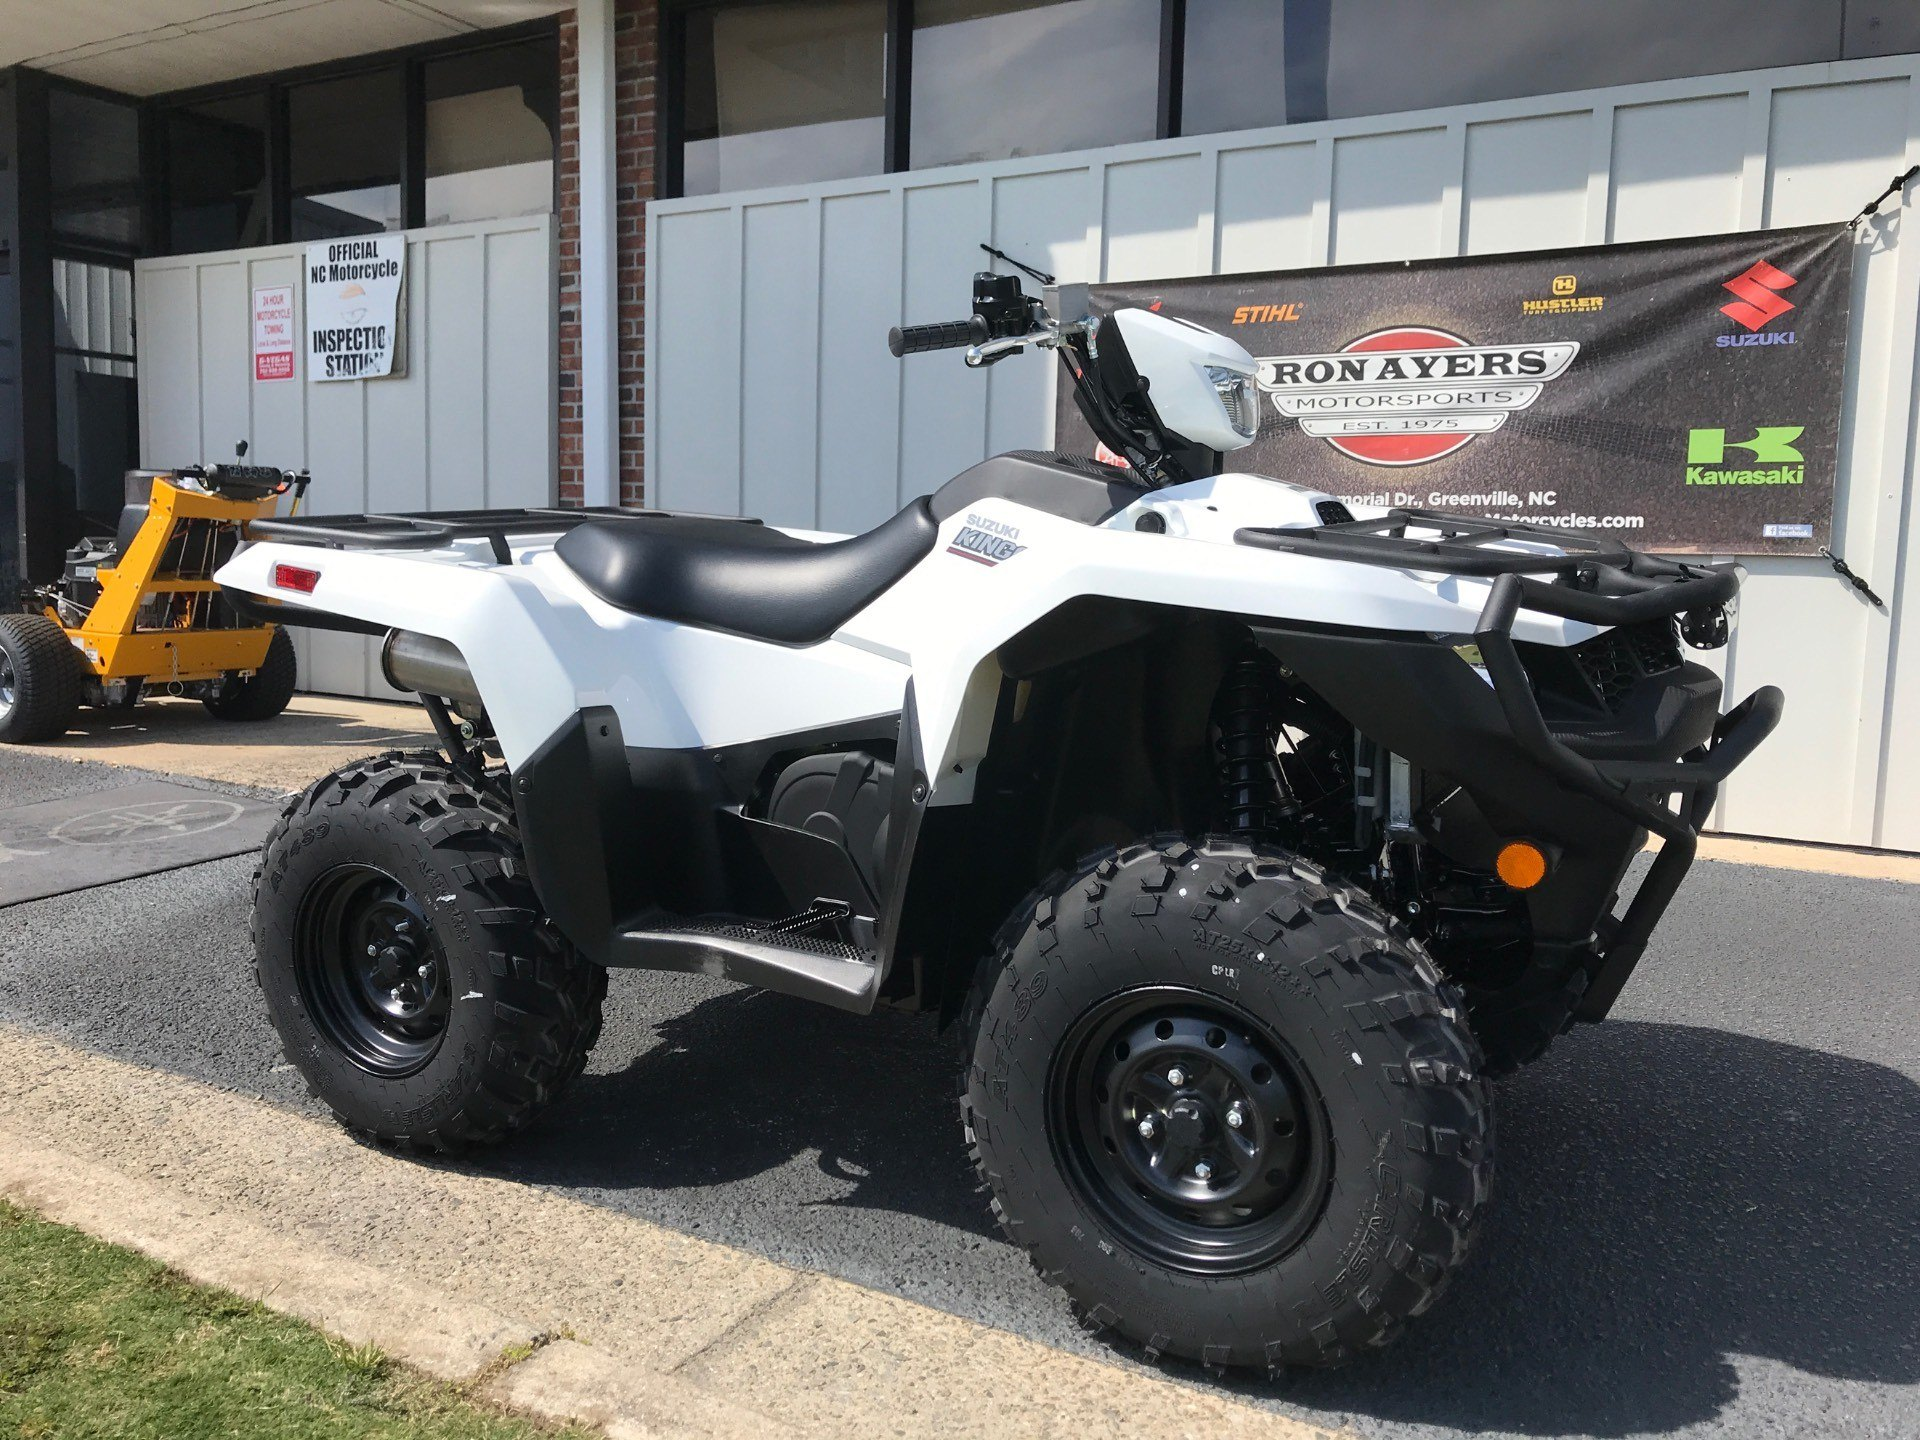 2020 Suzuki KingQuad 500AXi Power Steering with Rugged Package in Greenville, North Carolina - Photo 2